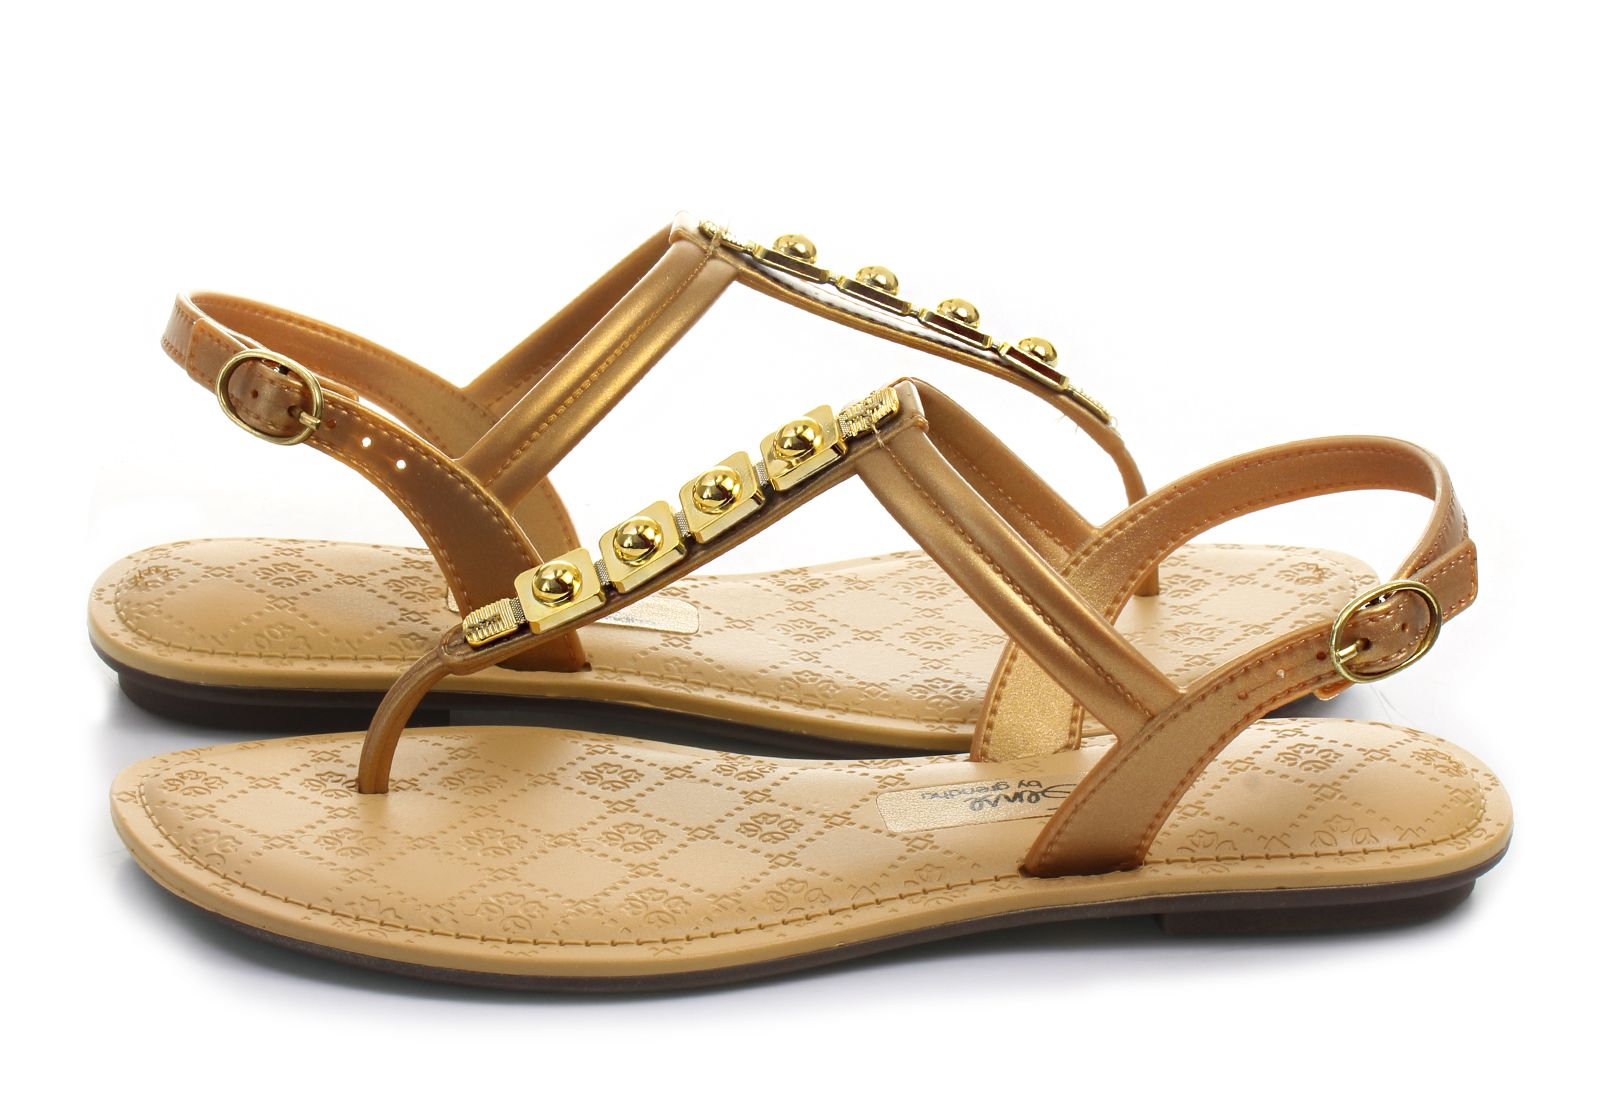 c2e8bb654 Grendha Sandals - Sense Jewel Sandal - 82145-24109 - Online shop for ...